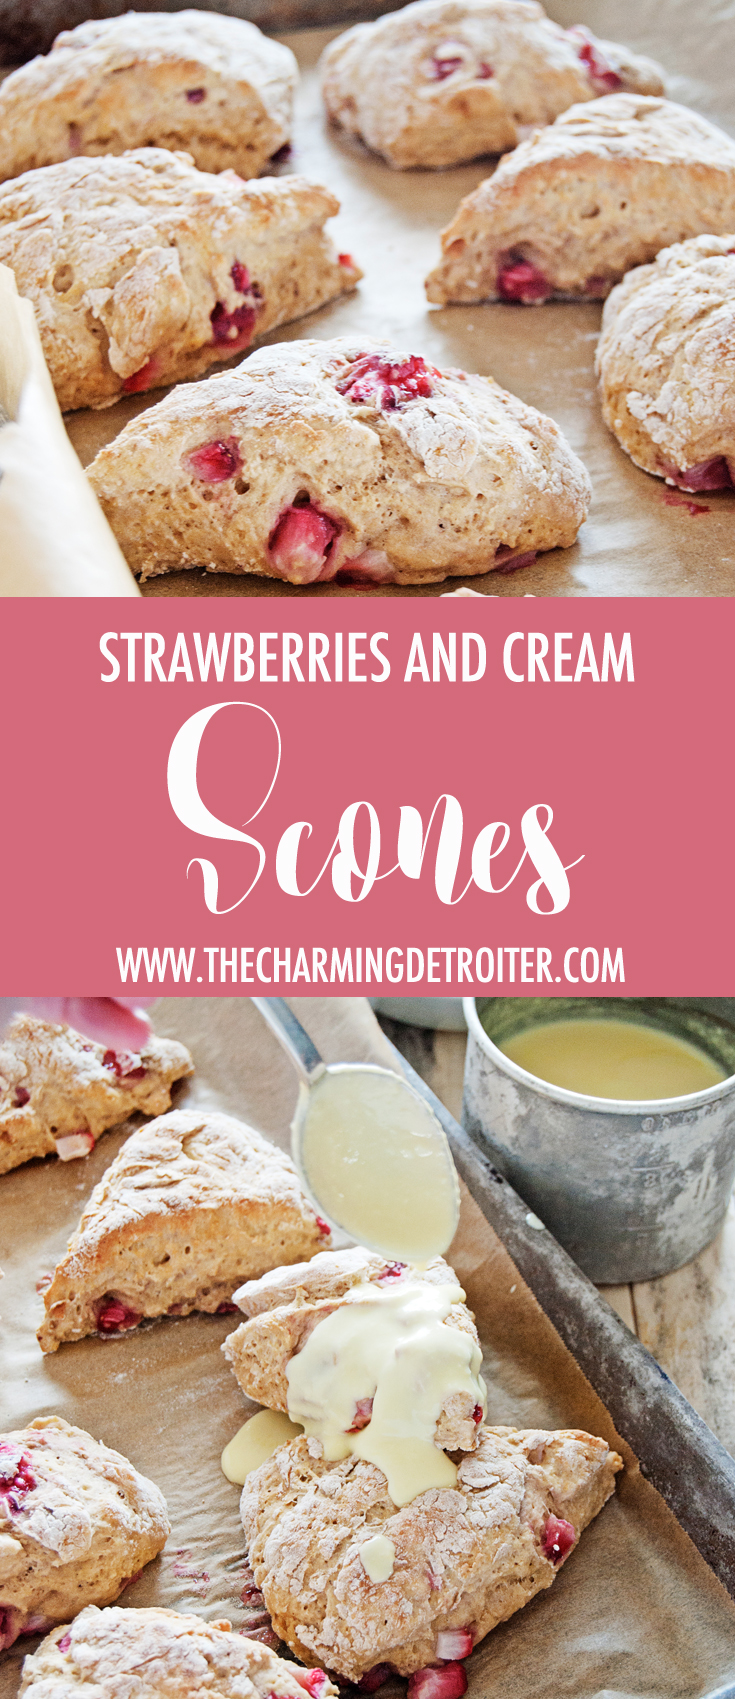 These strawberries and cream scones are ready in just 45 minutes and are paired with a creamy sweet treat on top: creme anglaise!